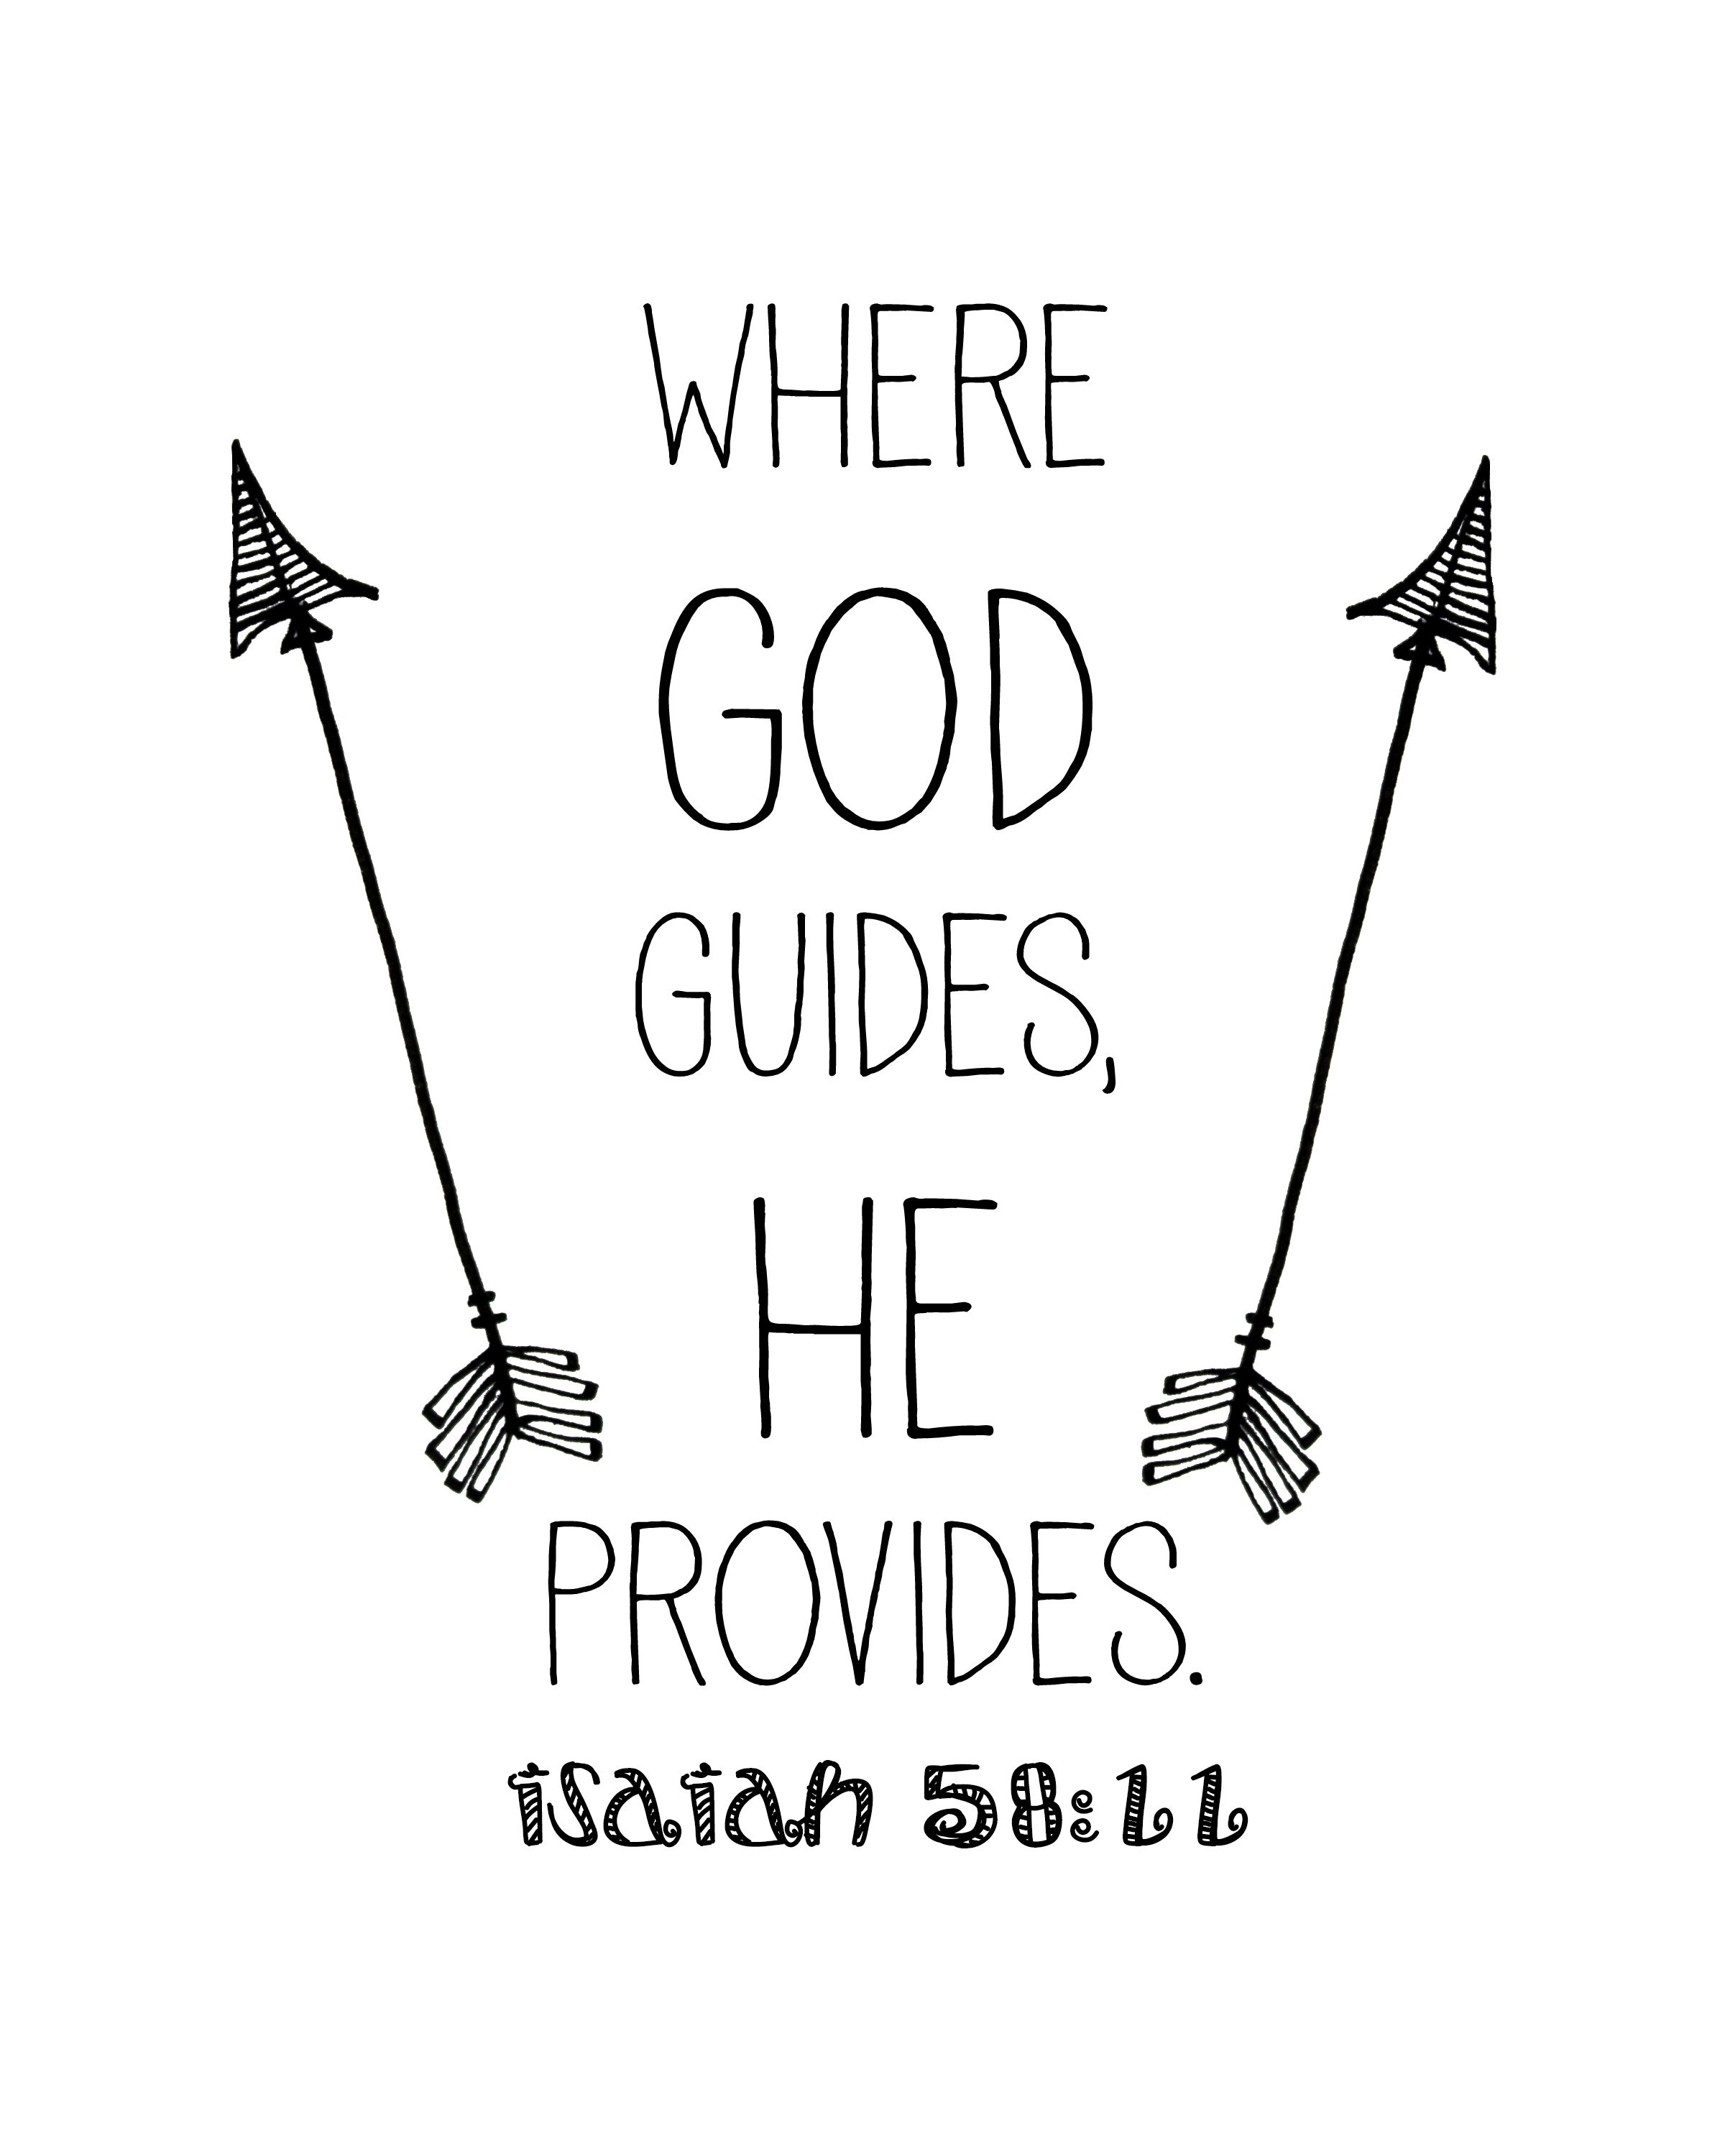 Christian Inspirational Quotes Black Background: Where God Guides He Provides Scripture Isaiah 58:11 Free